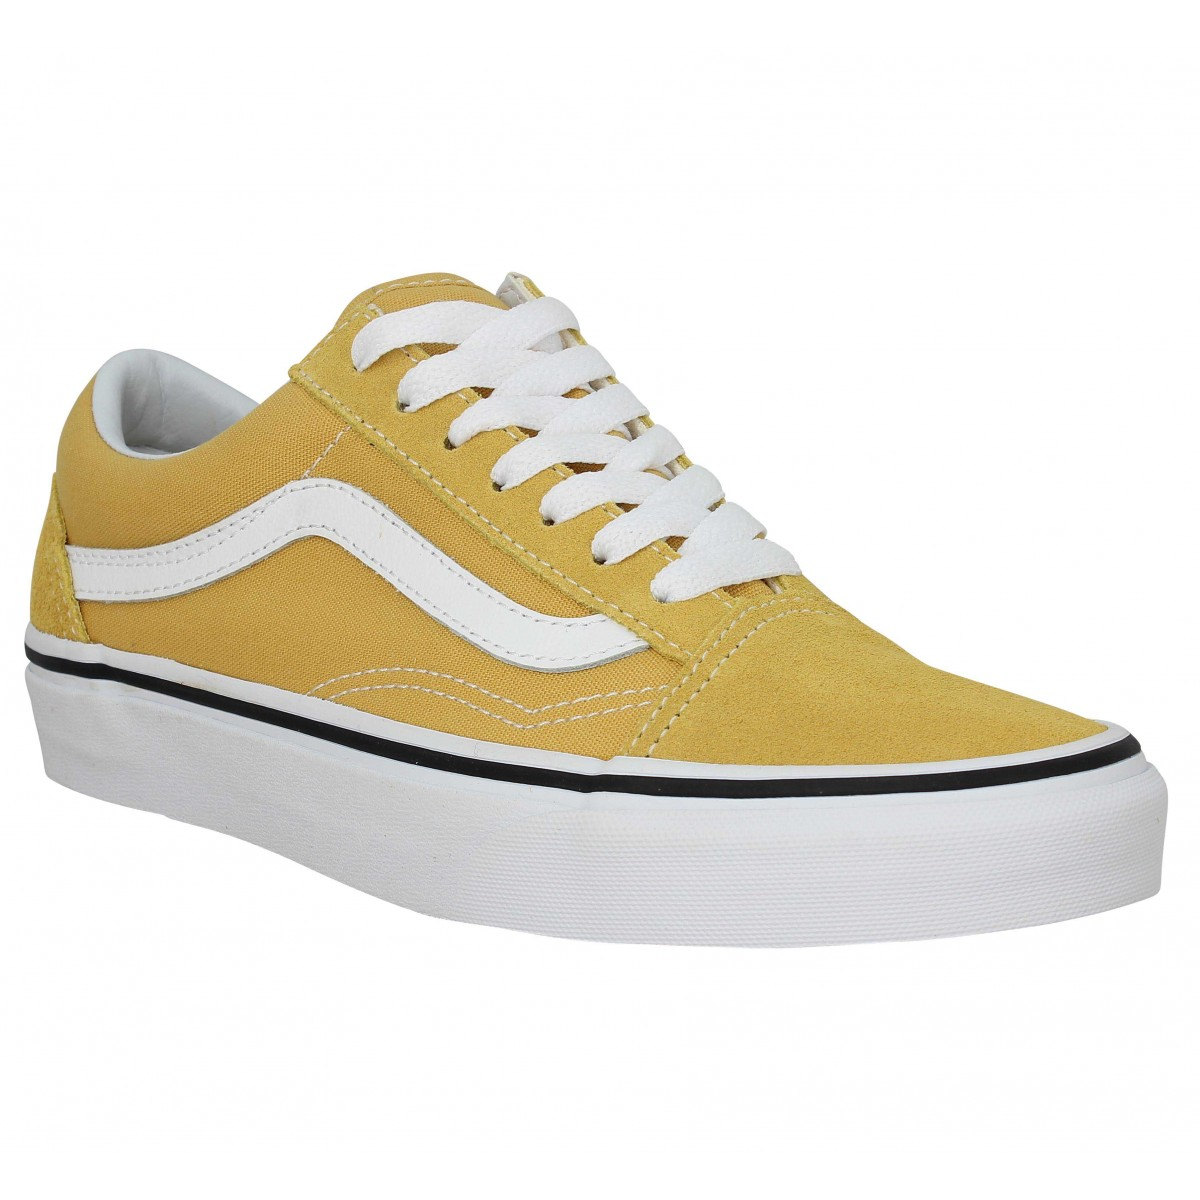 VANS Old Skool velours toile Ocre